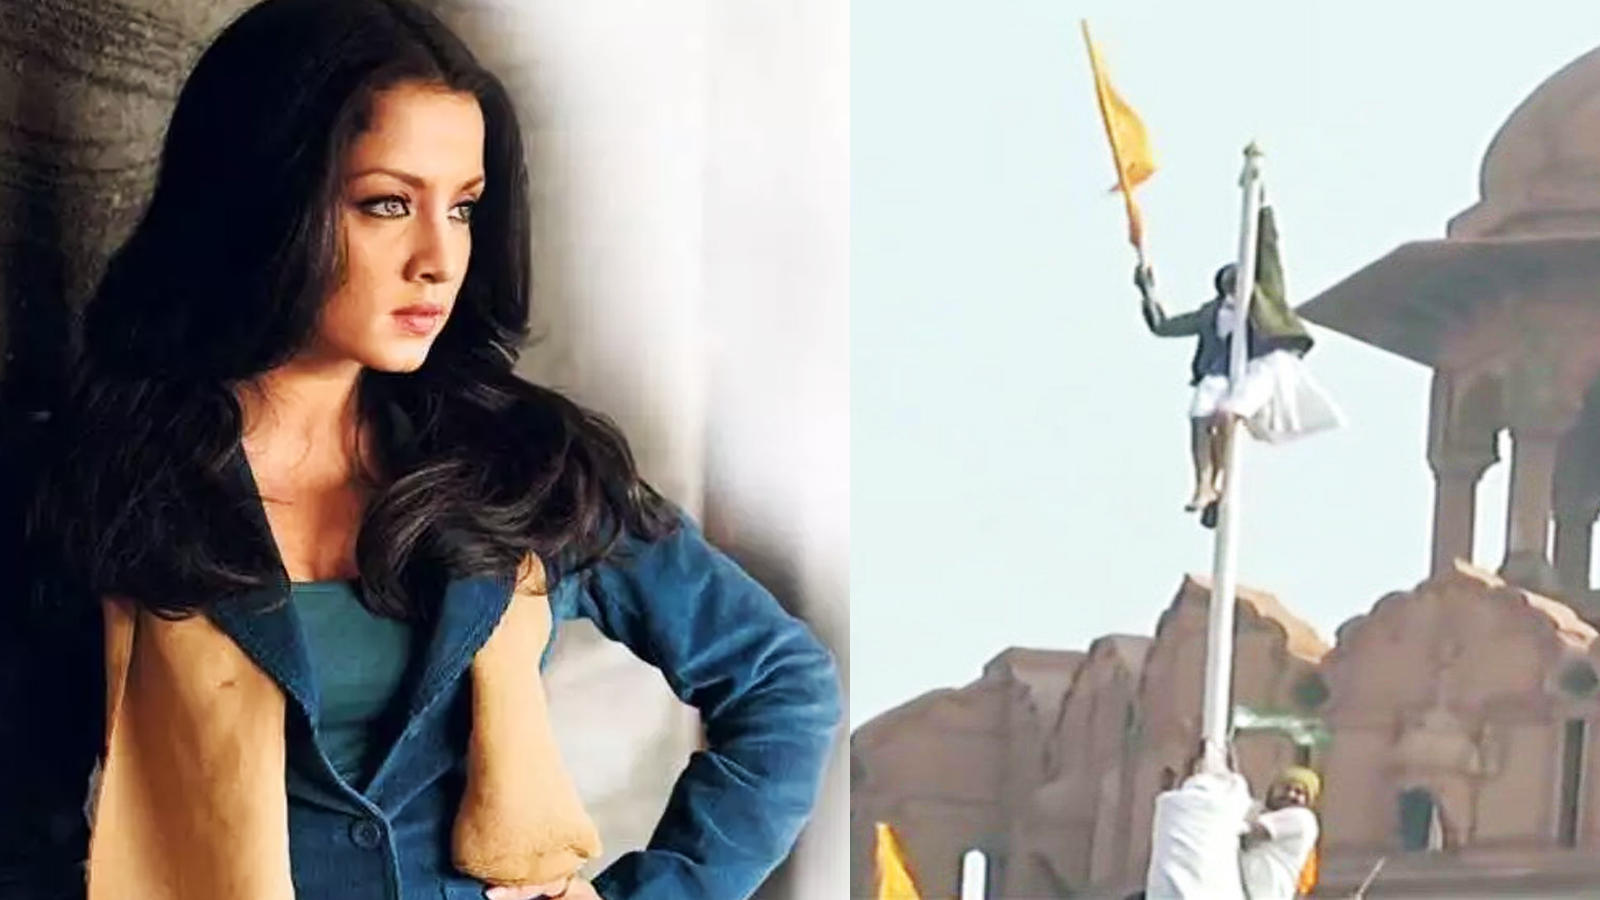 from-celina-jaitly-to-ranvir-shorey-bollywood-celebs-condemn-violence-at-farmers-tractor-rally-in-delhi